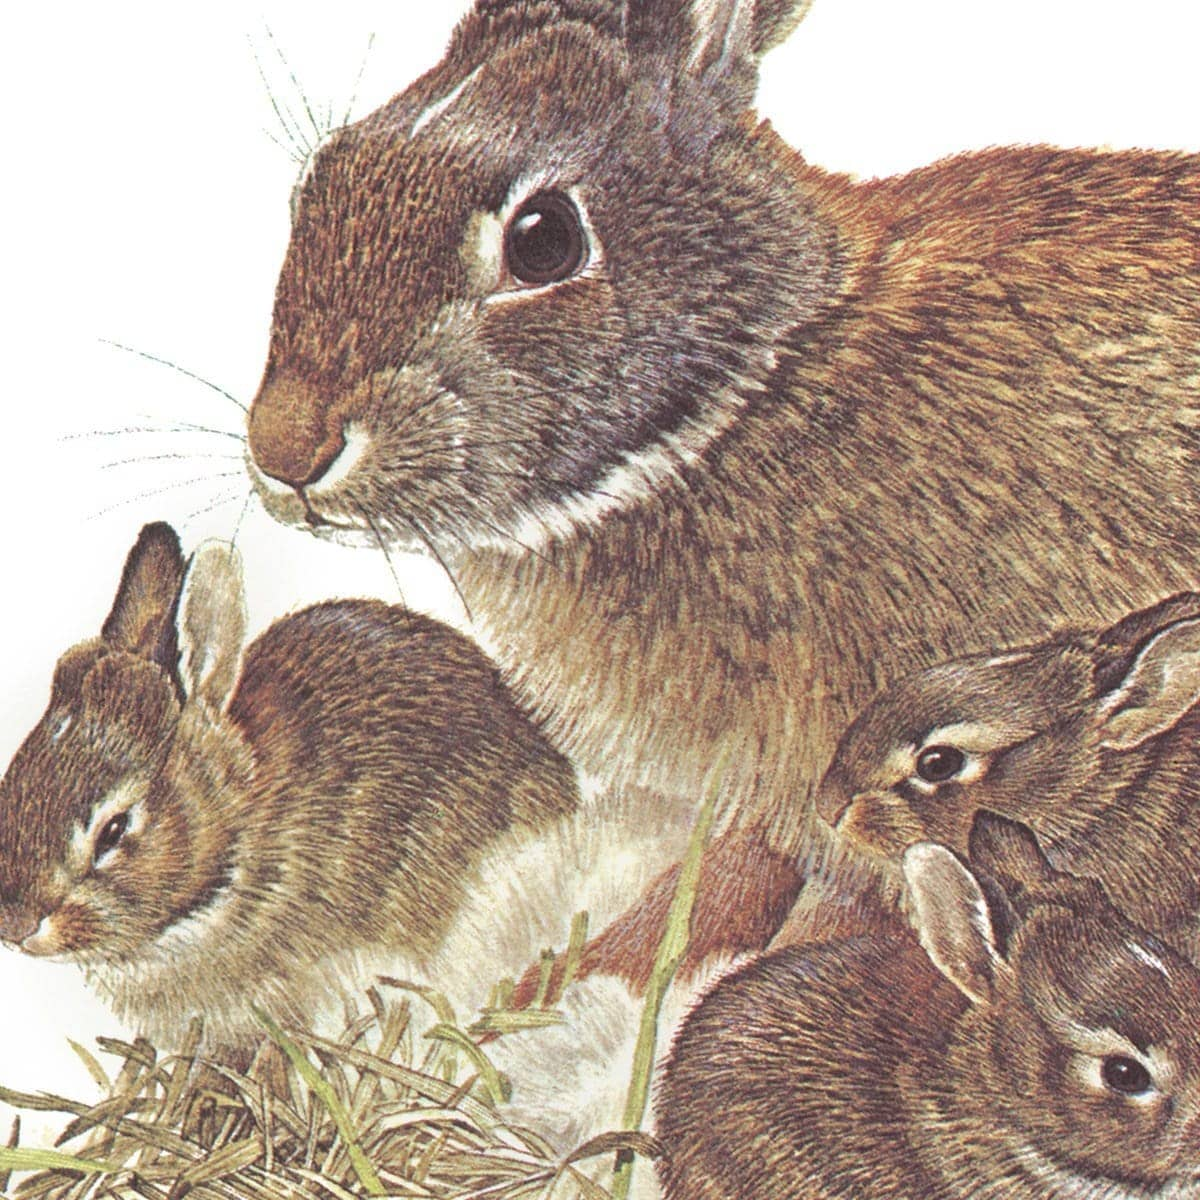 Cottontail Rabbit - Art Print by Glen Loates from the Glen Loates Store